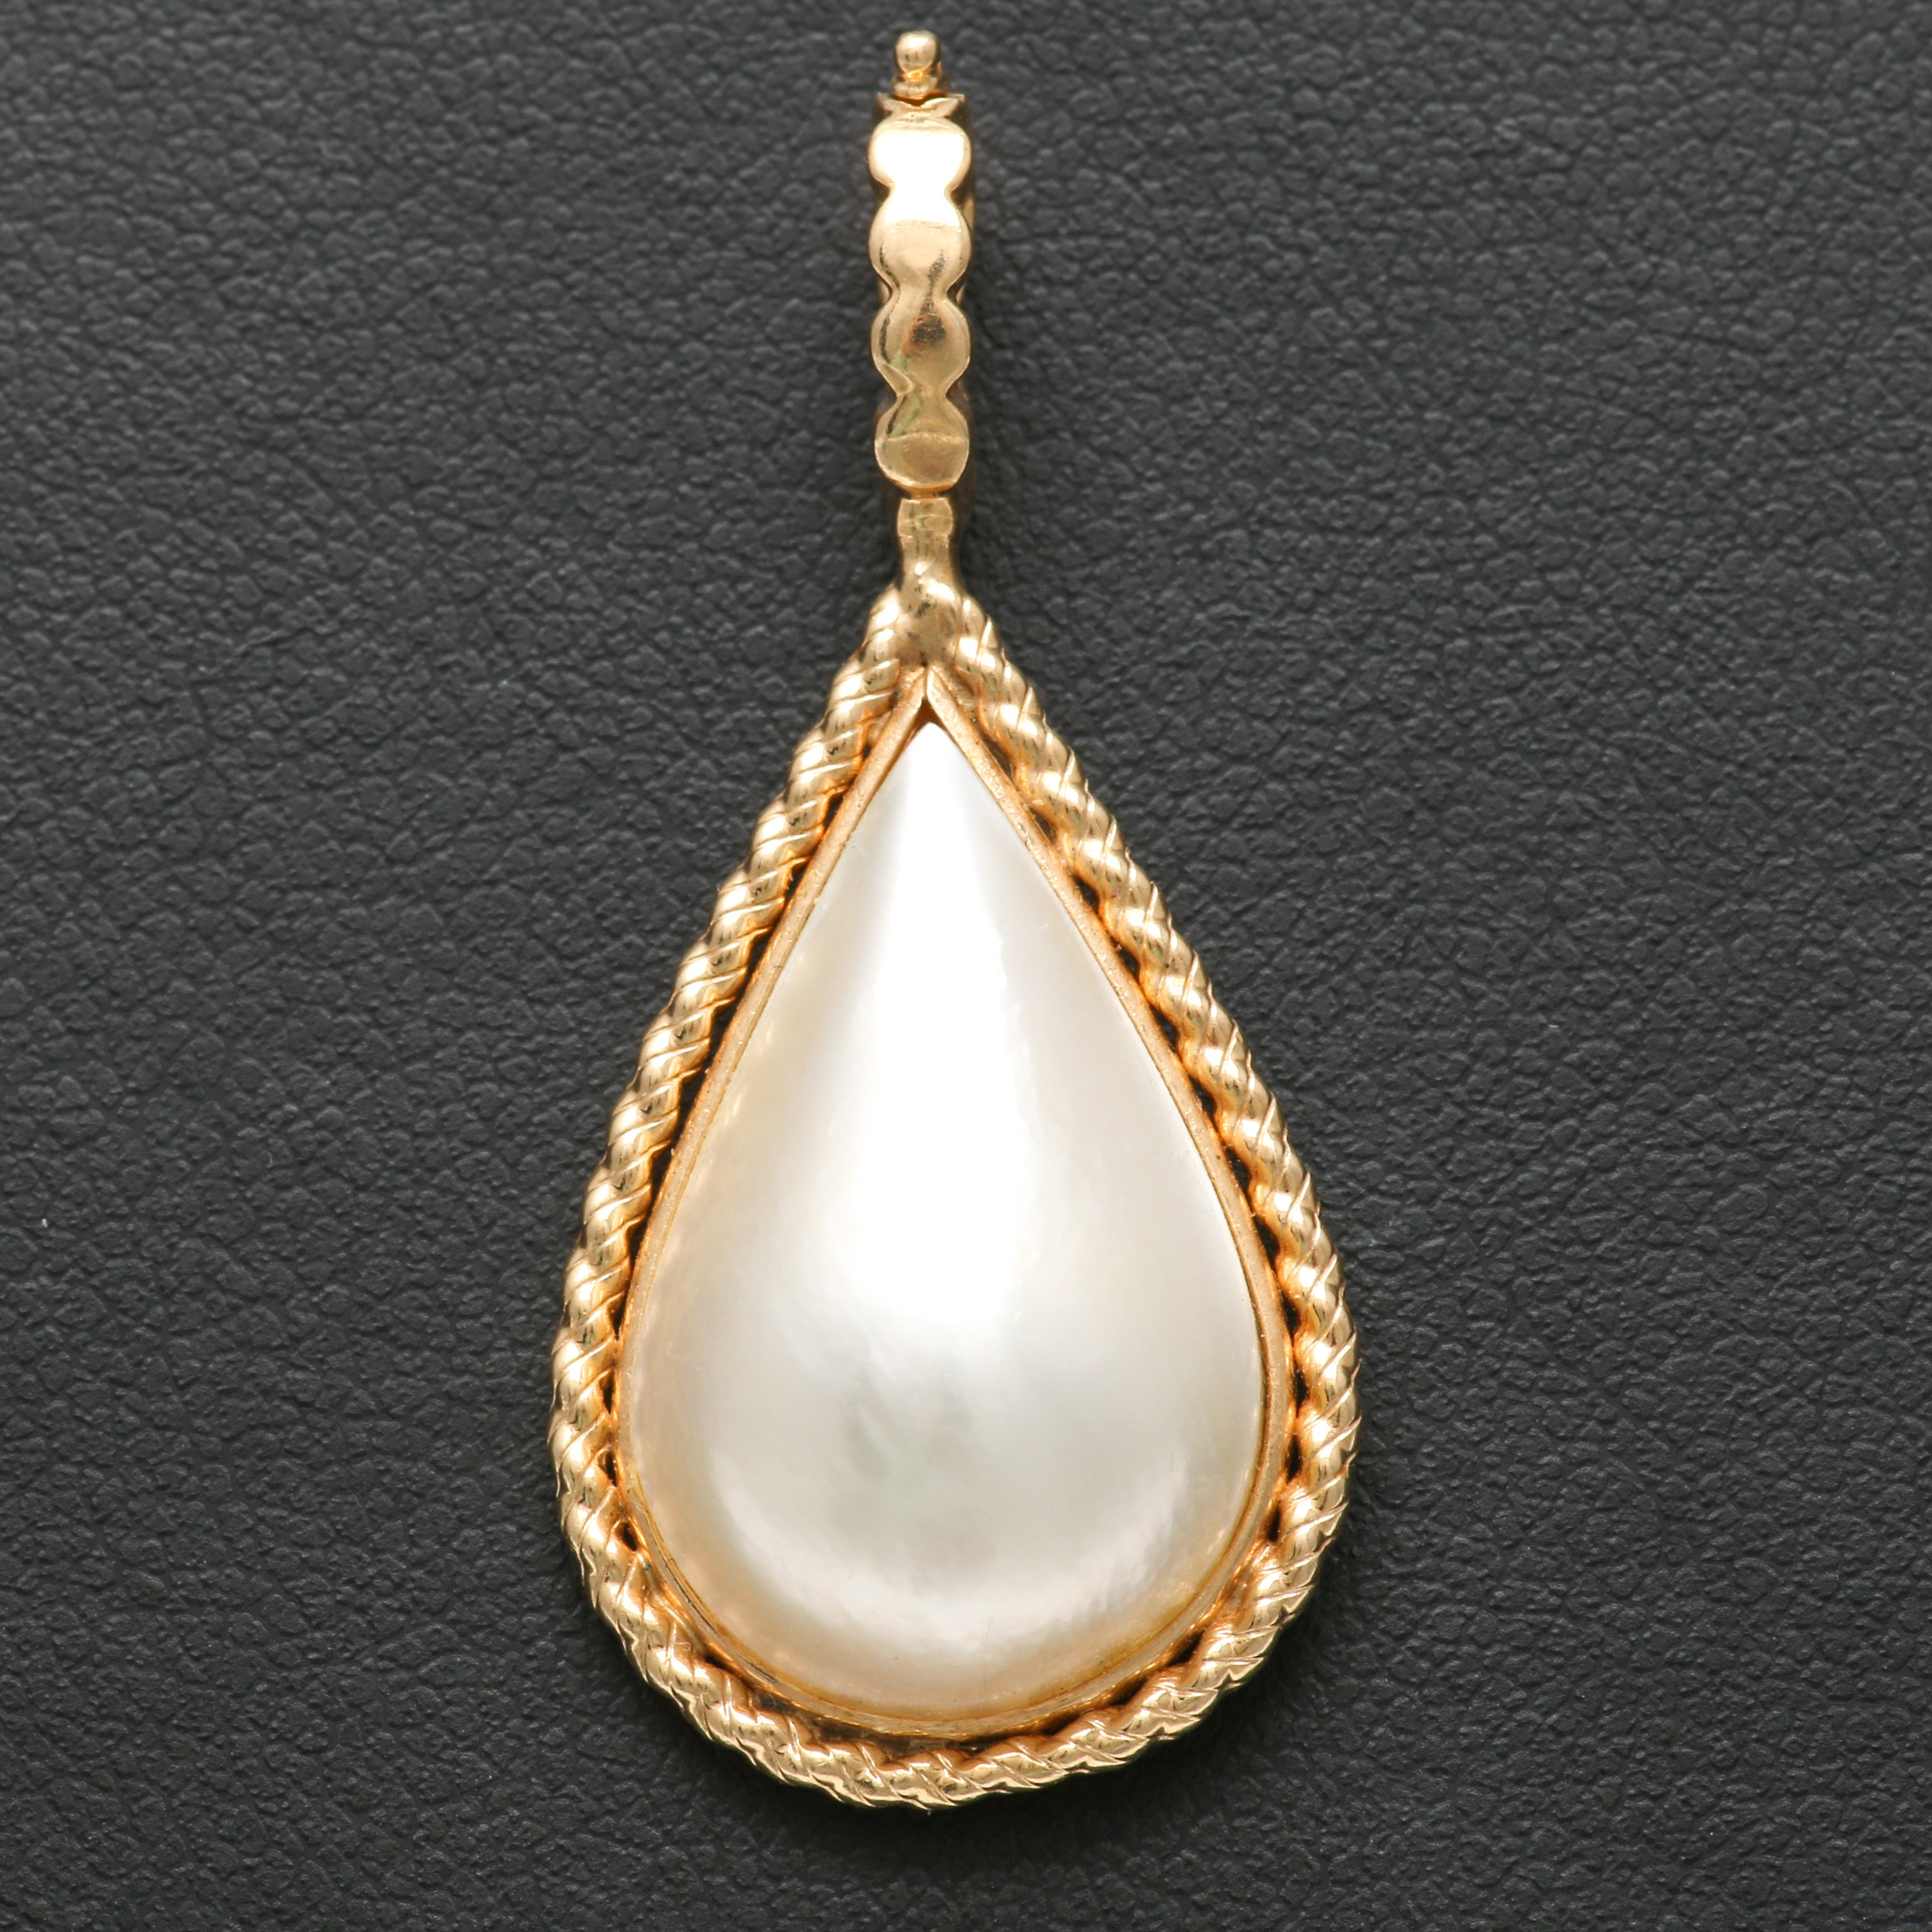 14K Yellow Gold and Cultured Pearl Pendant